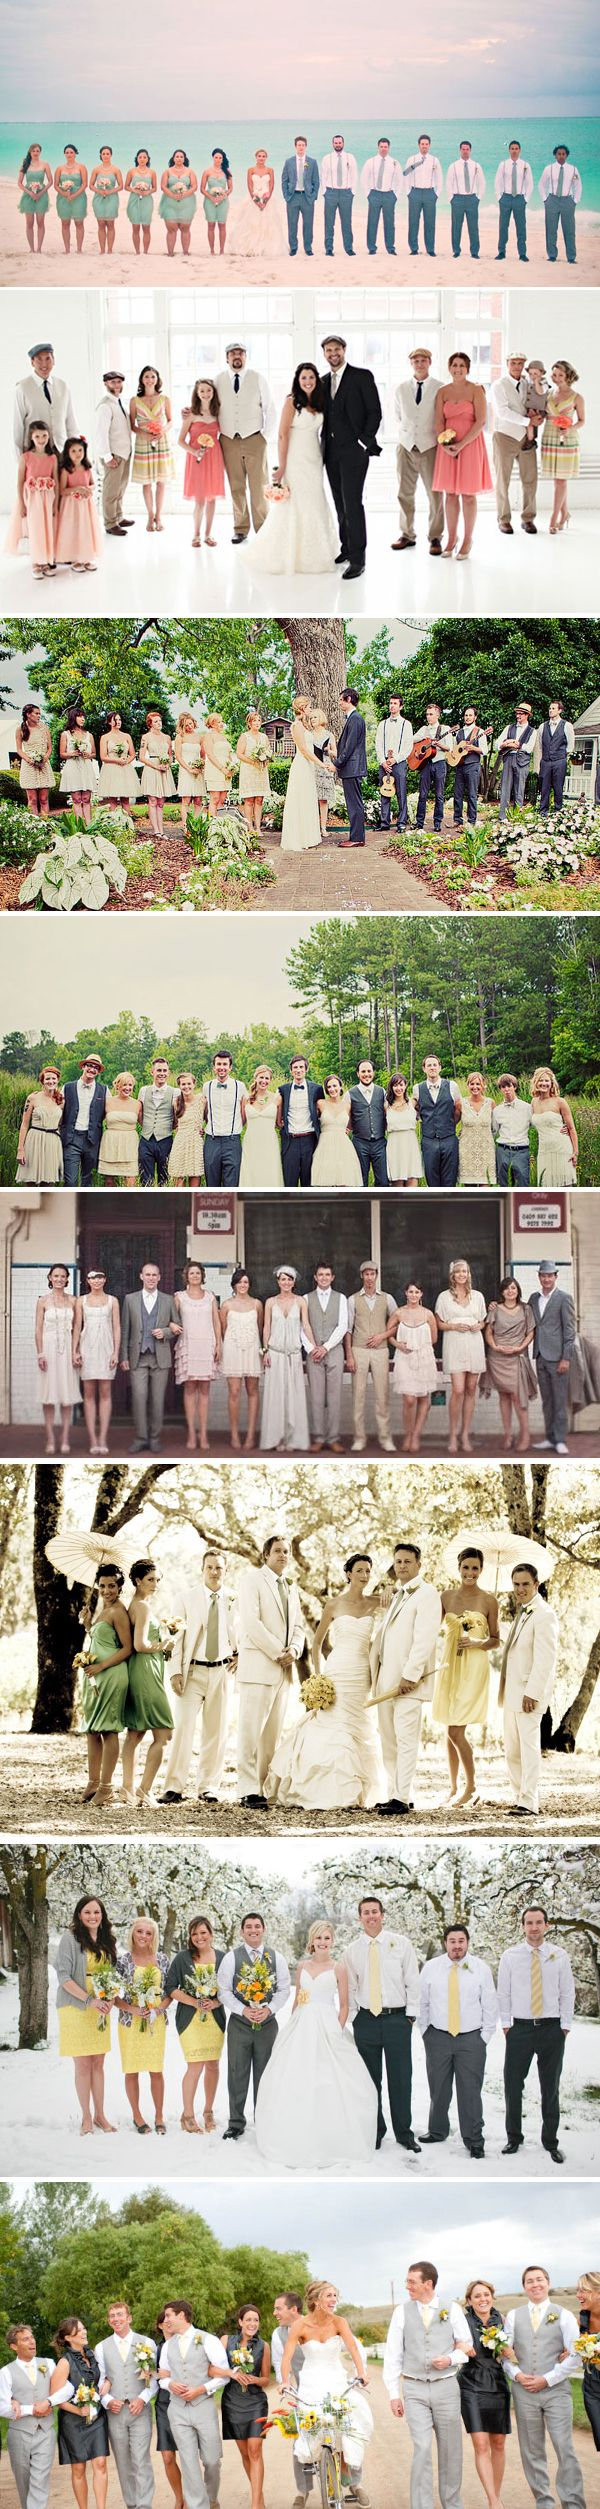 I especially like the second photo - 68 Fashion Inspiration for Bridesmaids and Groomsmen